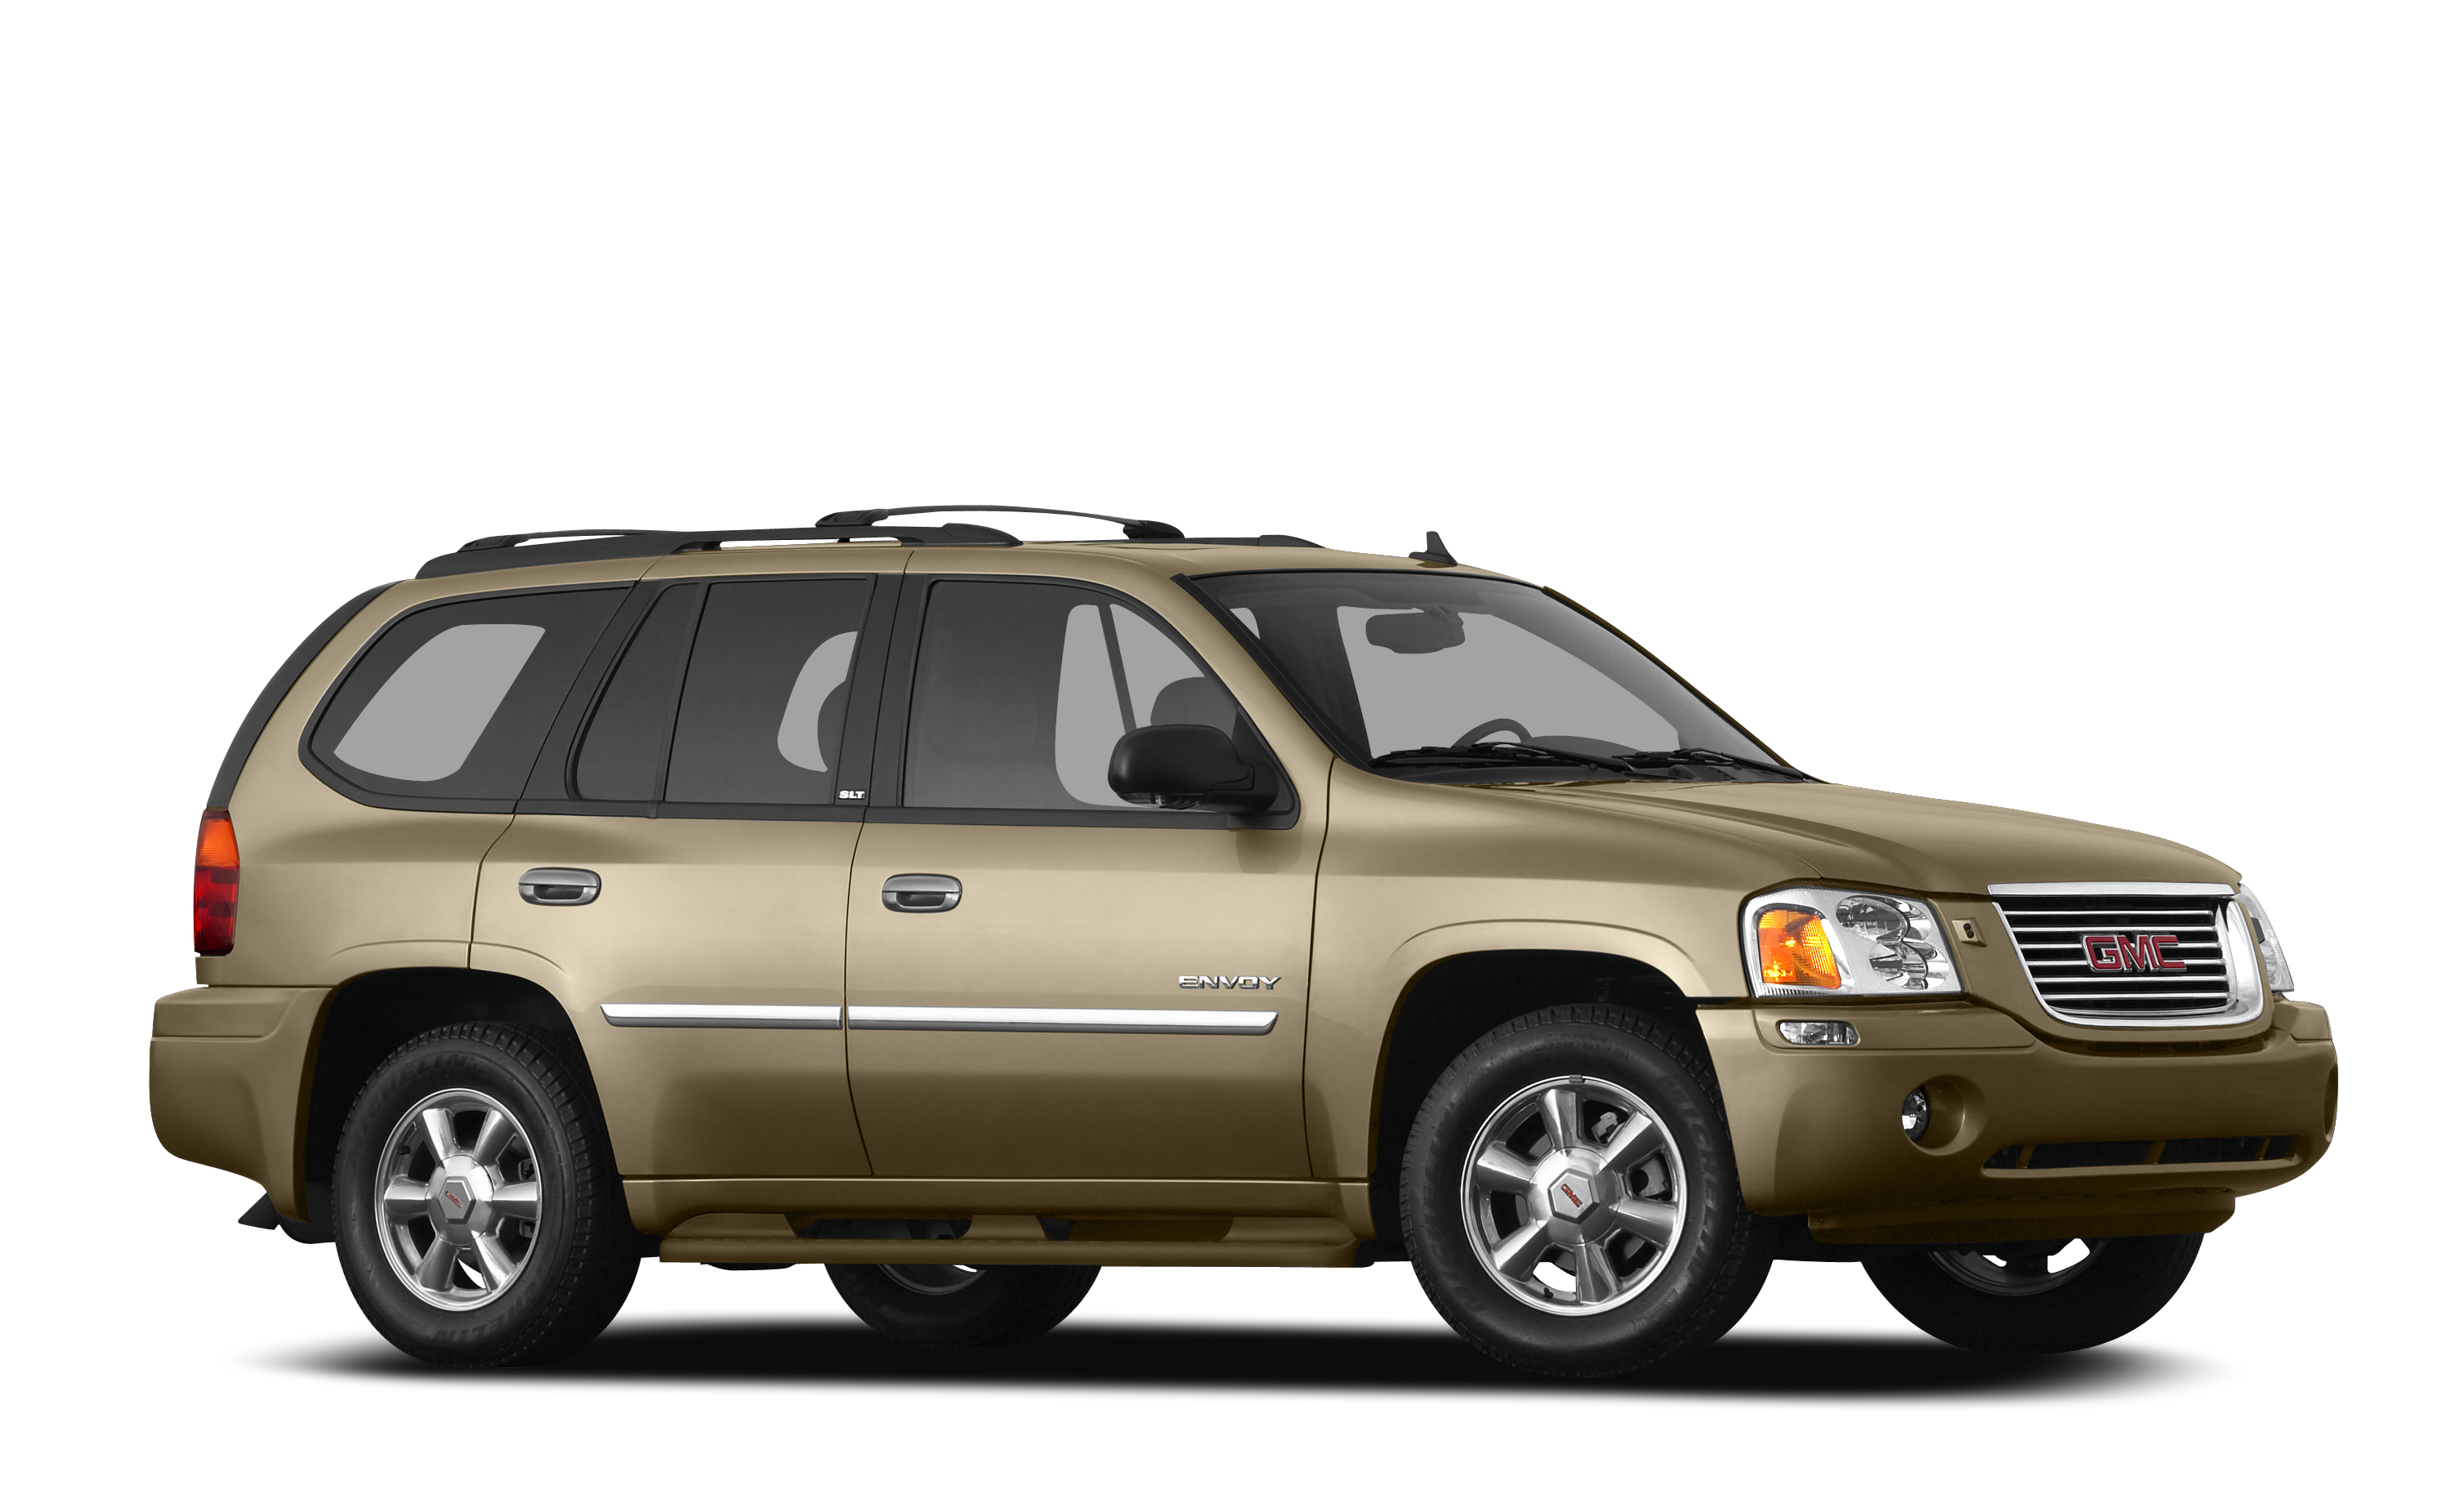 Gmc Terrain Lease Deals >> Compare Gmc/Envoy to Chevrolet/Equinox